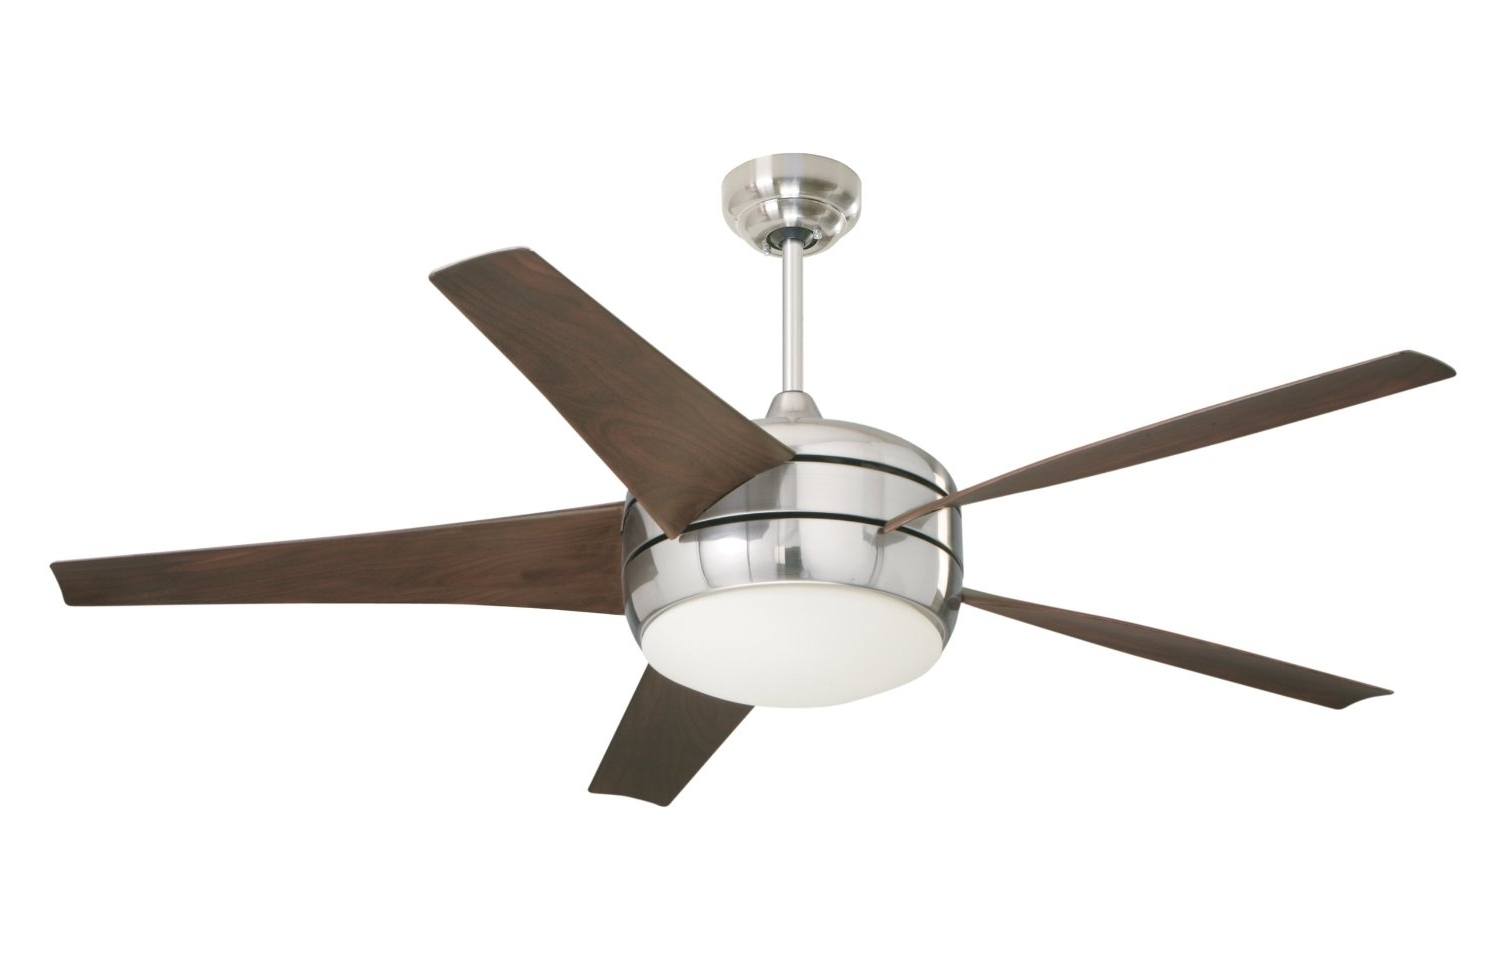 Best Ceiling Fans Reviews, Buying Guide And Comparison 2018 Pertaining To Recent Outdoor Ceiling Fans With High Cfm (View 3 of 20)